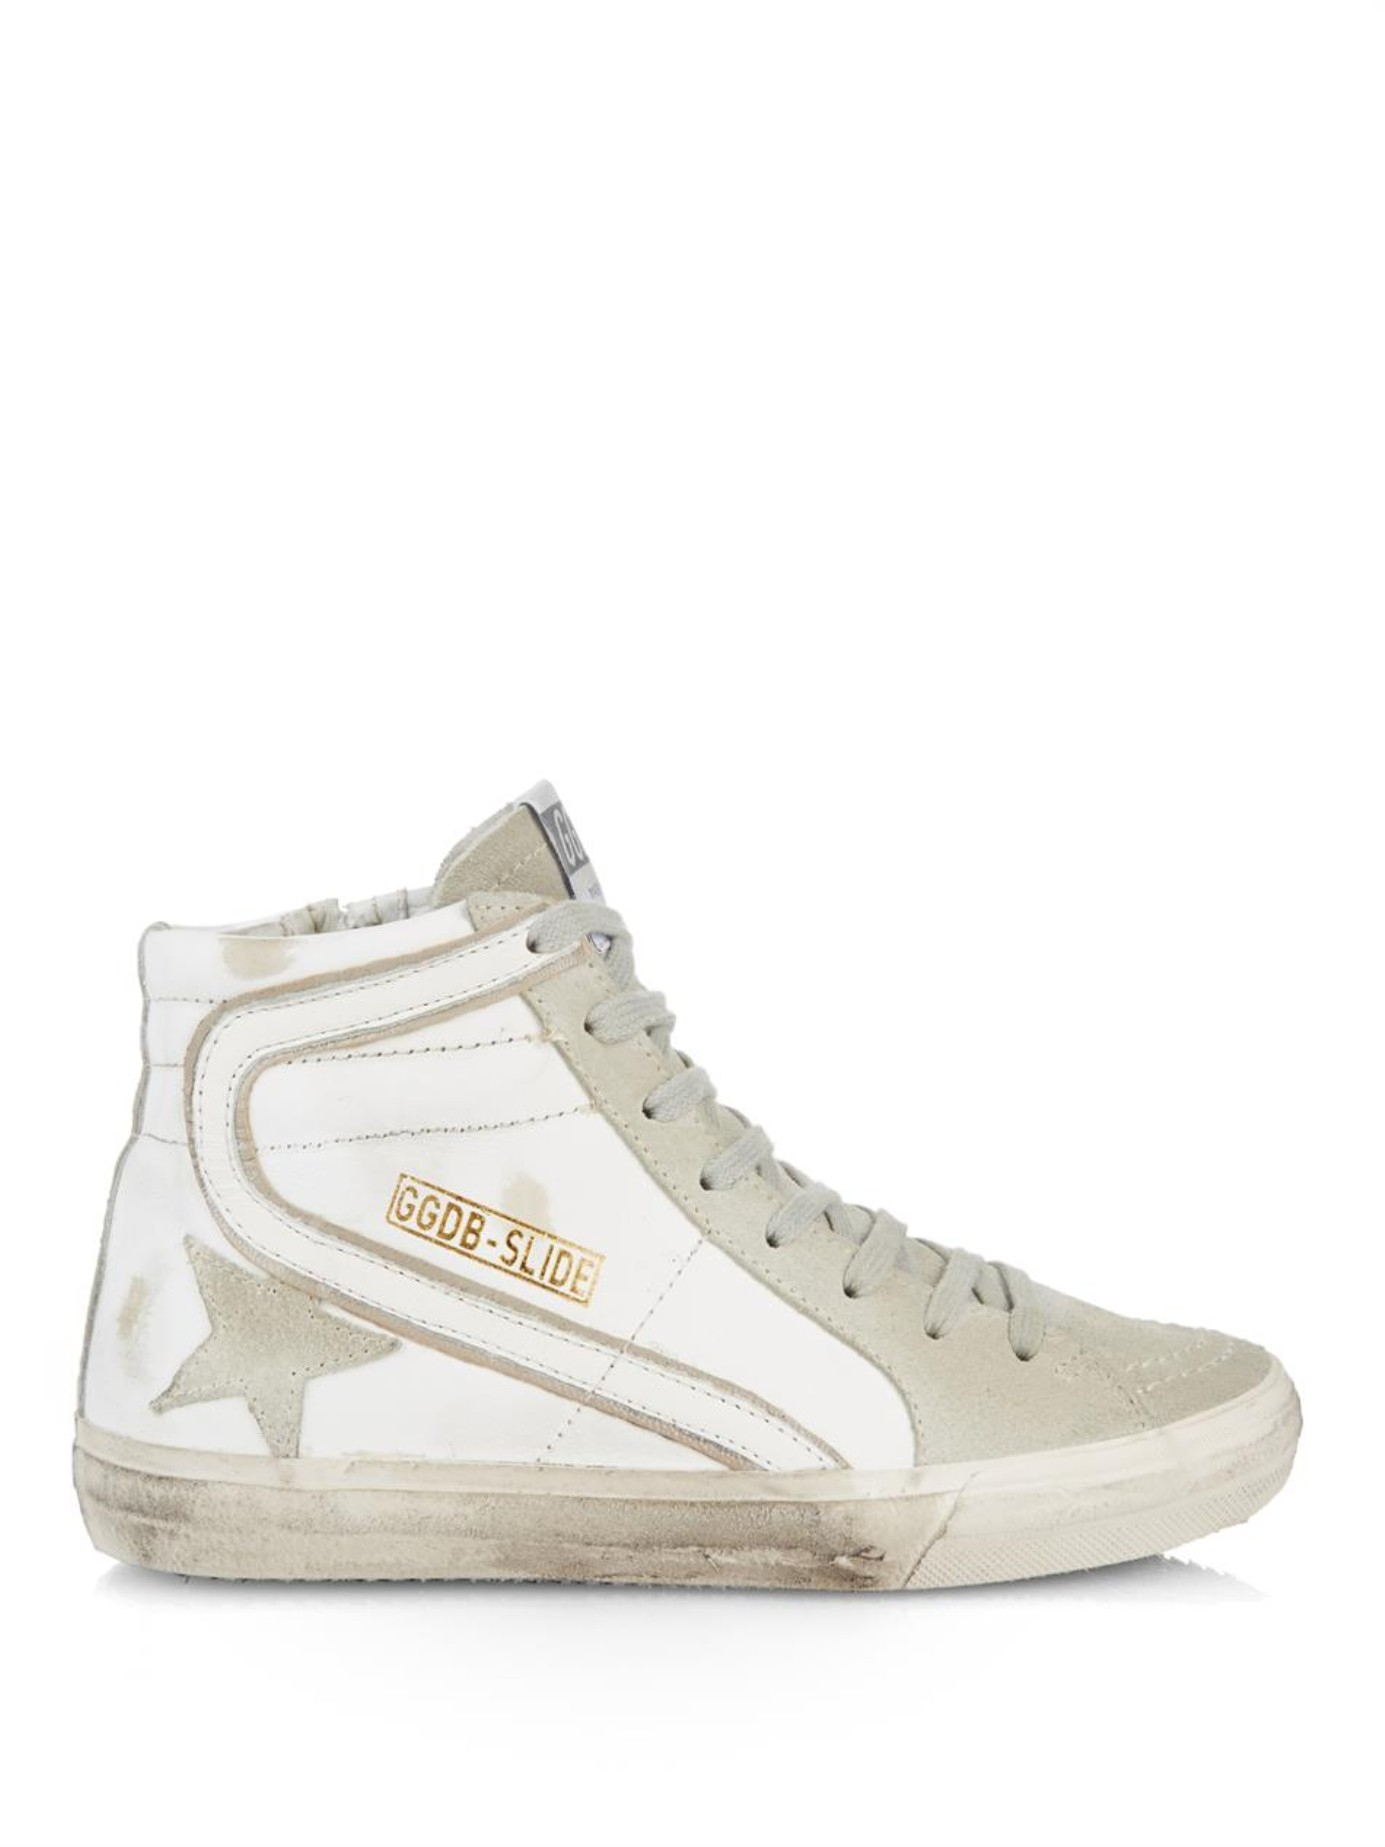 2344dbe93d8 Golden Goose Deluxe Brand Slide High-Top Leather Sneakers in White ...